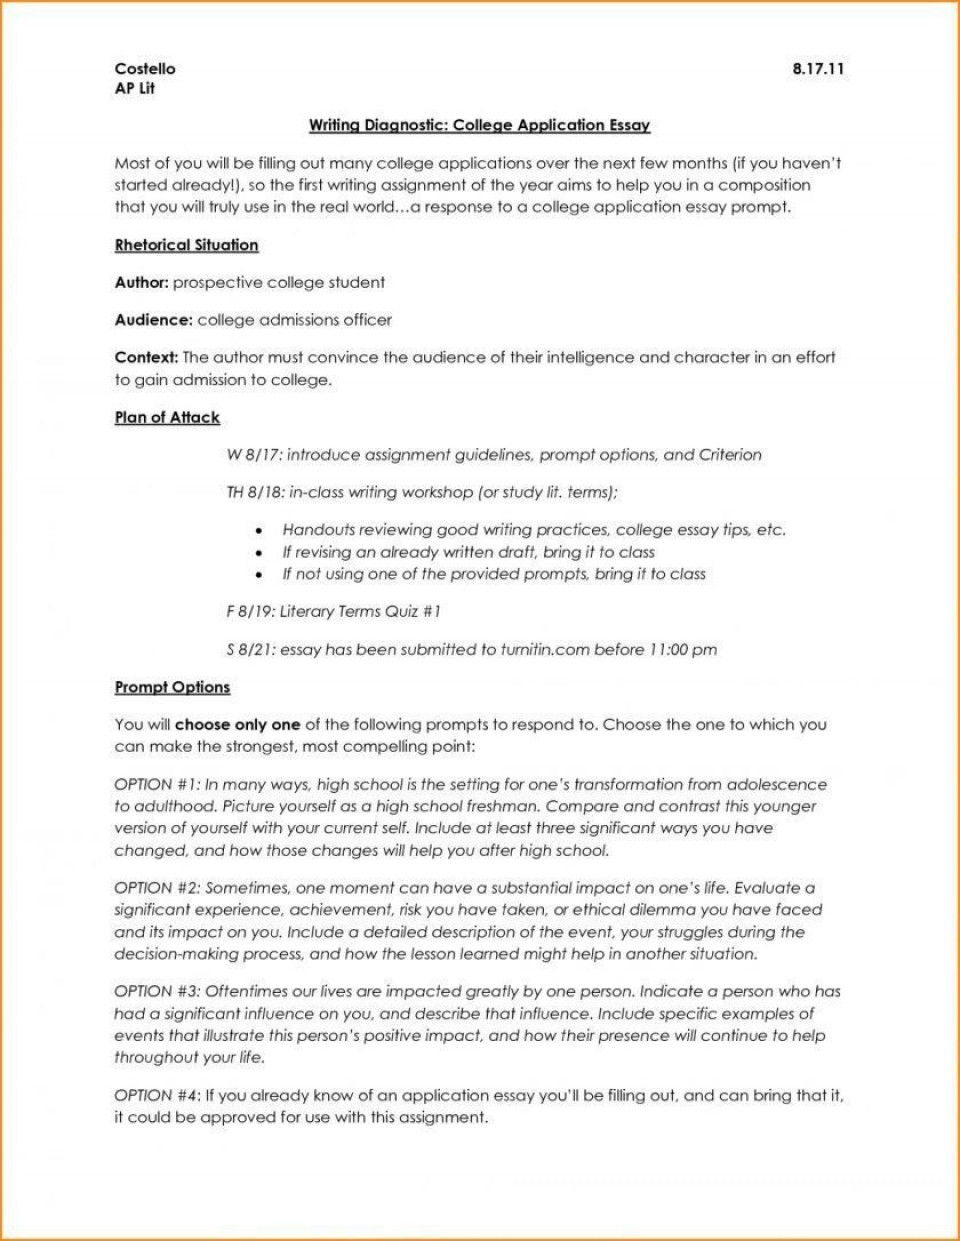 006 Surprising College Application Essay Outline Example Idea  Admission Format Heading Narrative Template960